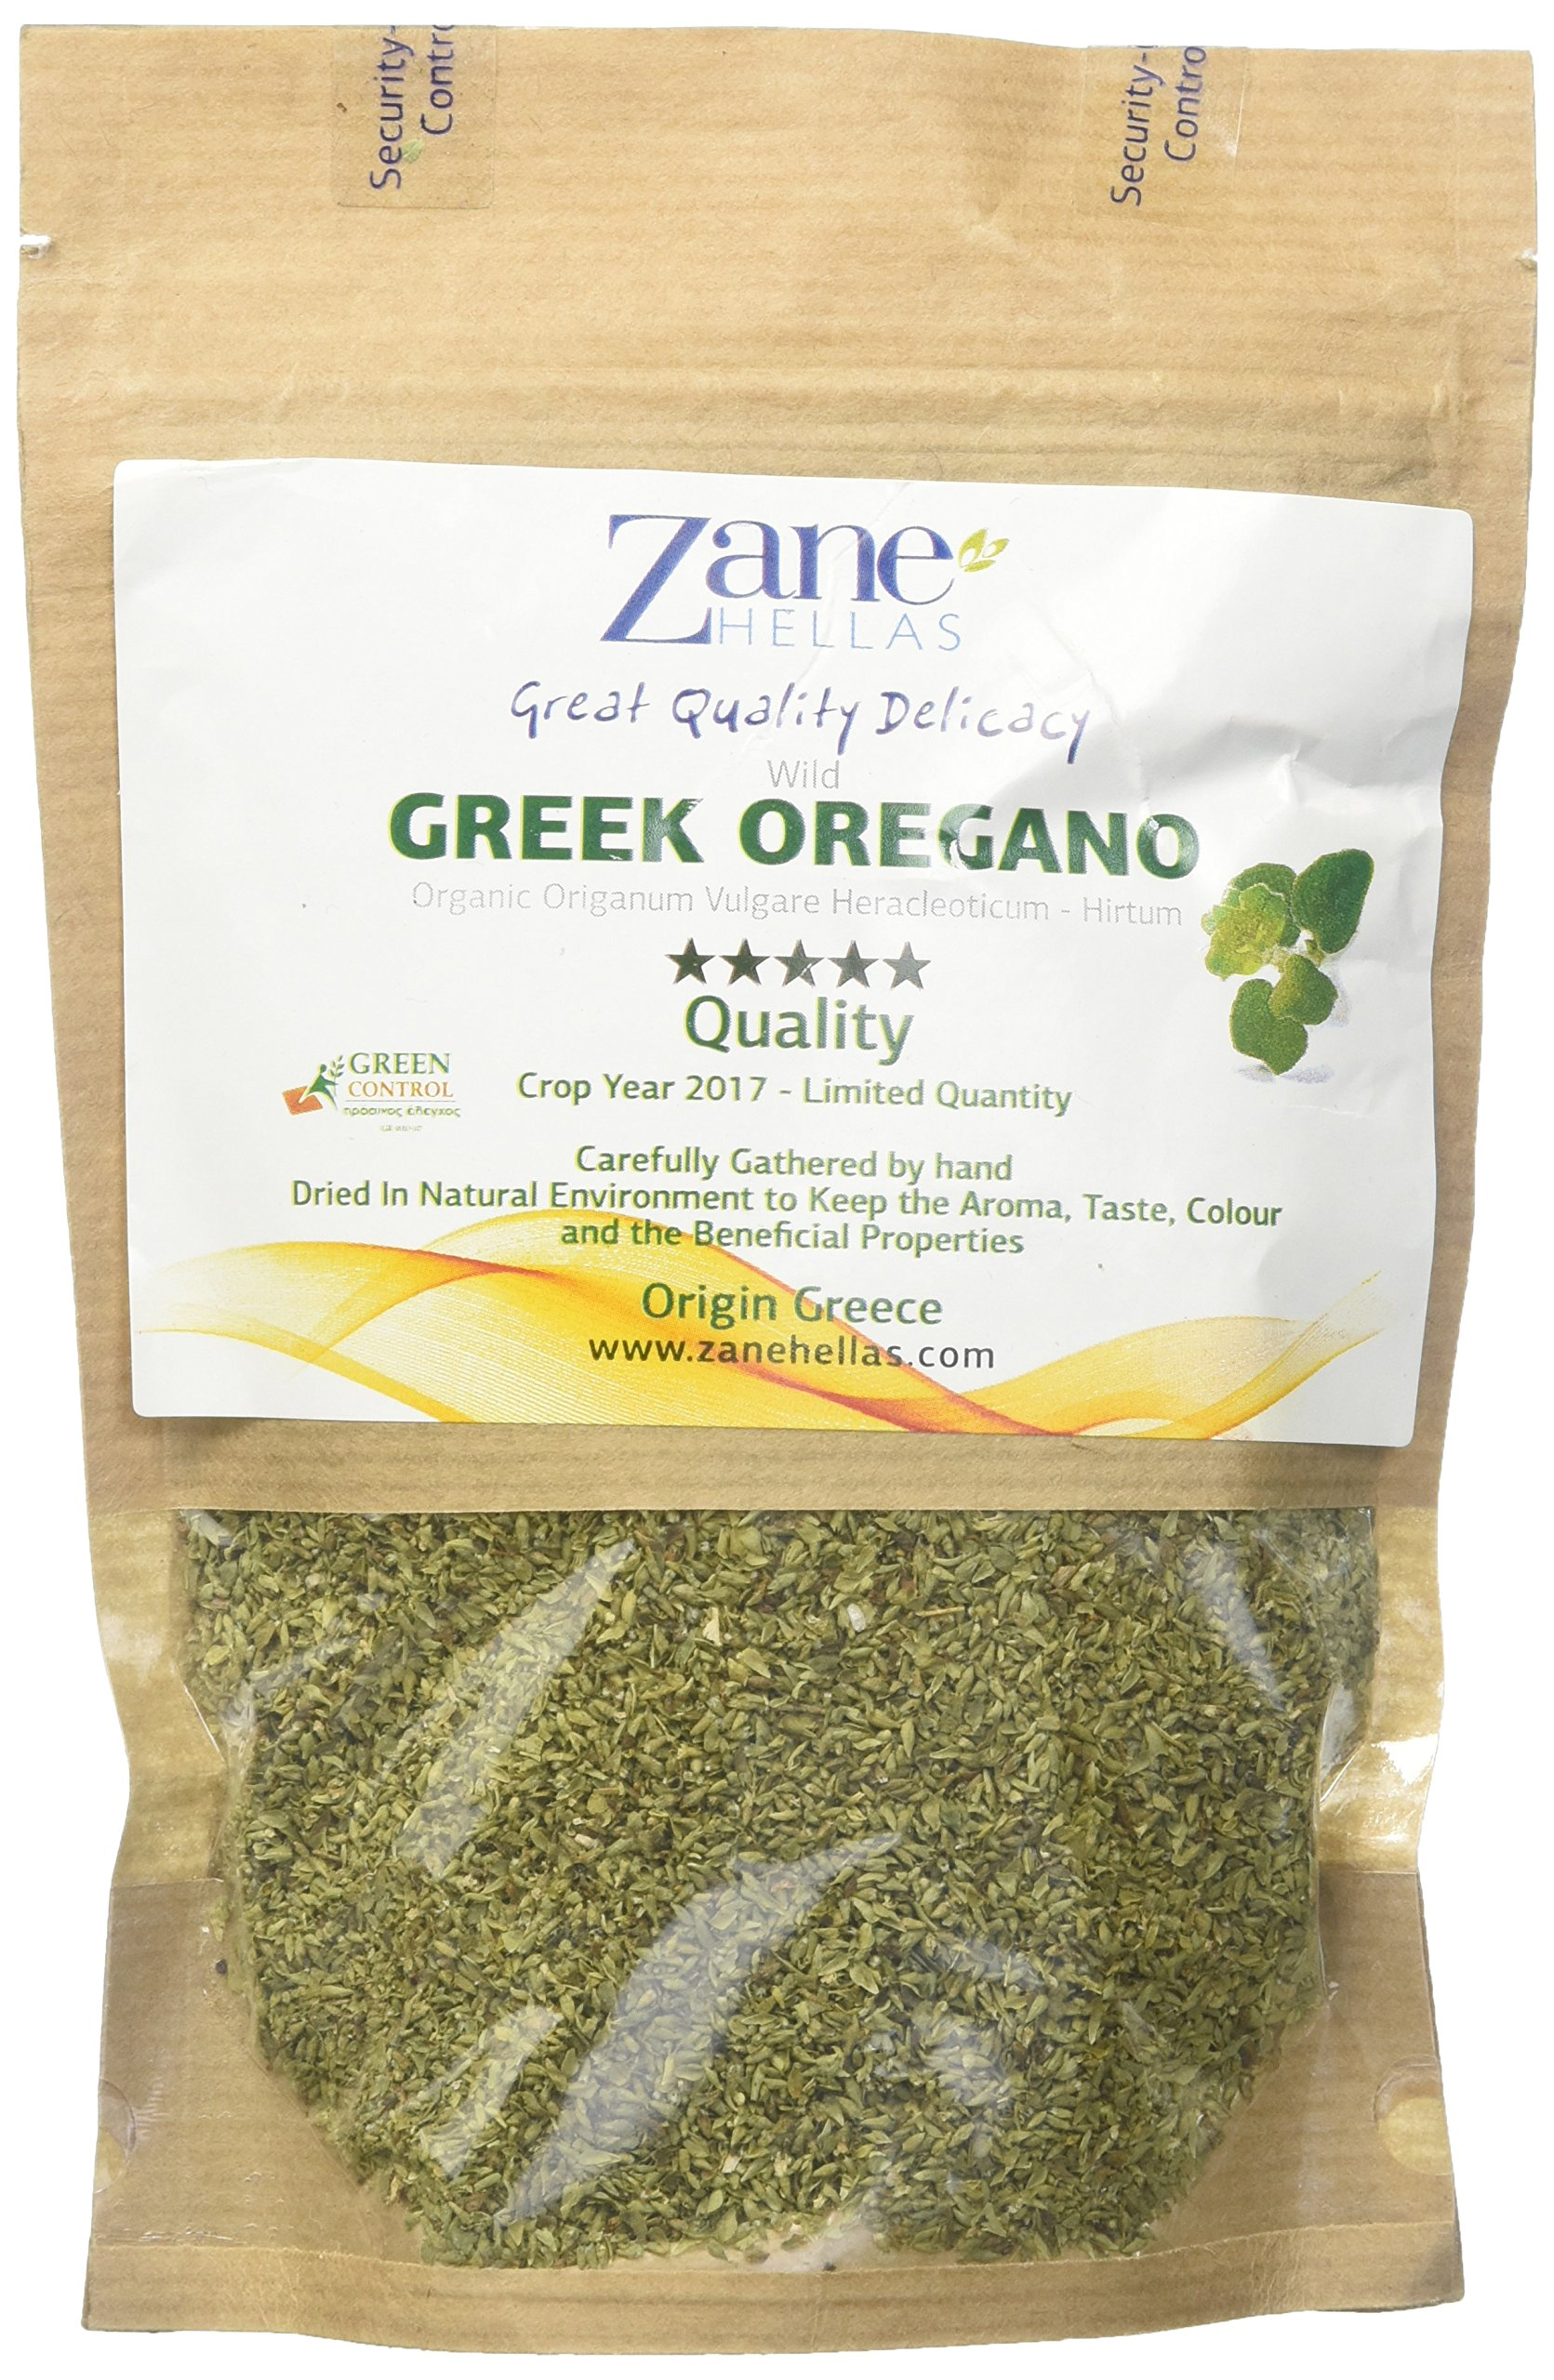 Zane Hellas Organic Culinary Greek Wild Dried Oregano Herb Leaves 2.80 oz. - 80 gr. Crop Year 2017. Limited Quantity